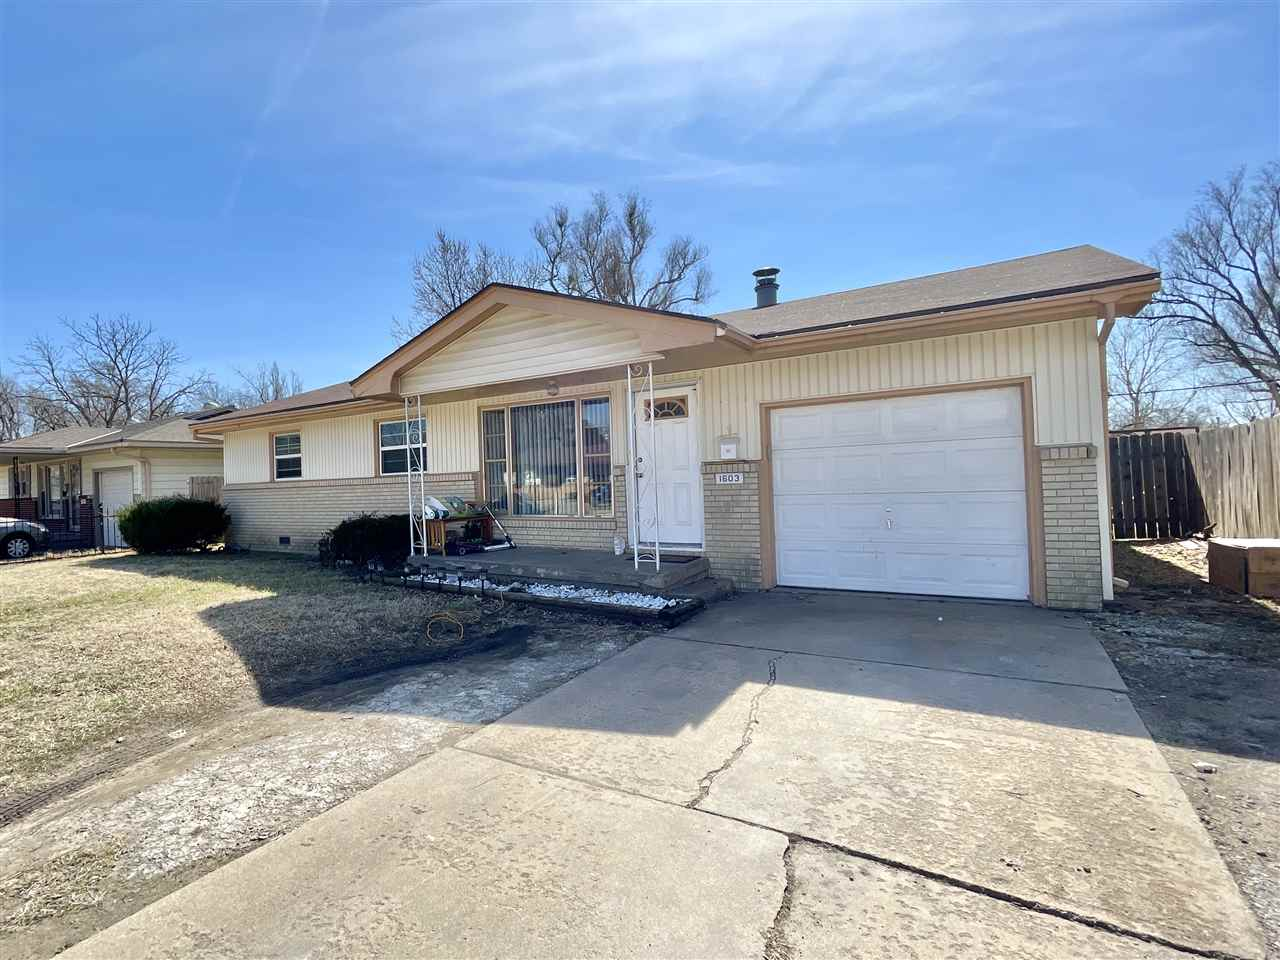 Great starter home or investment opportunity! This property features 3 bedroom 1 bath and a 1 car at